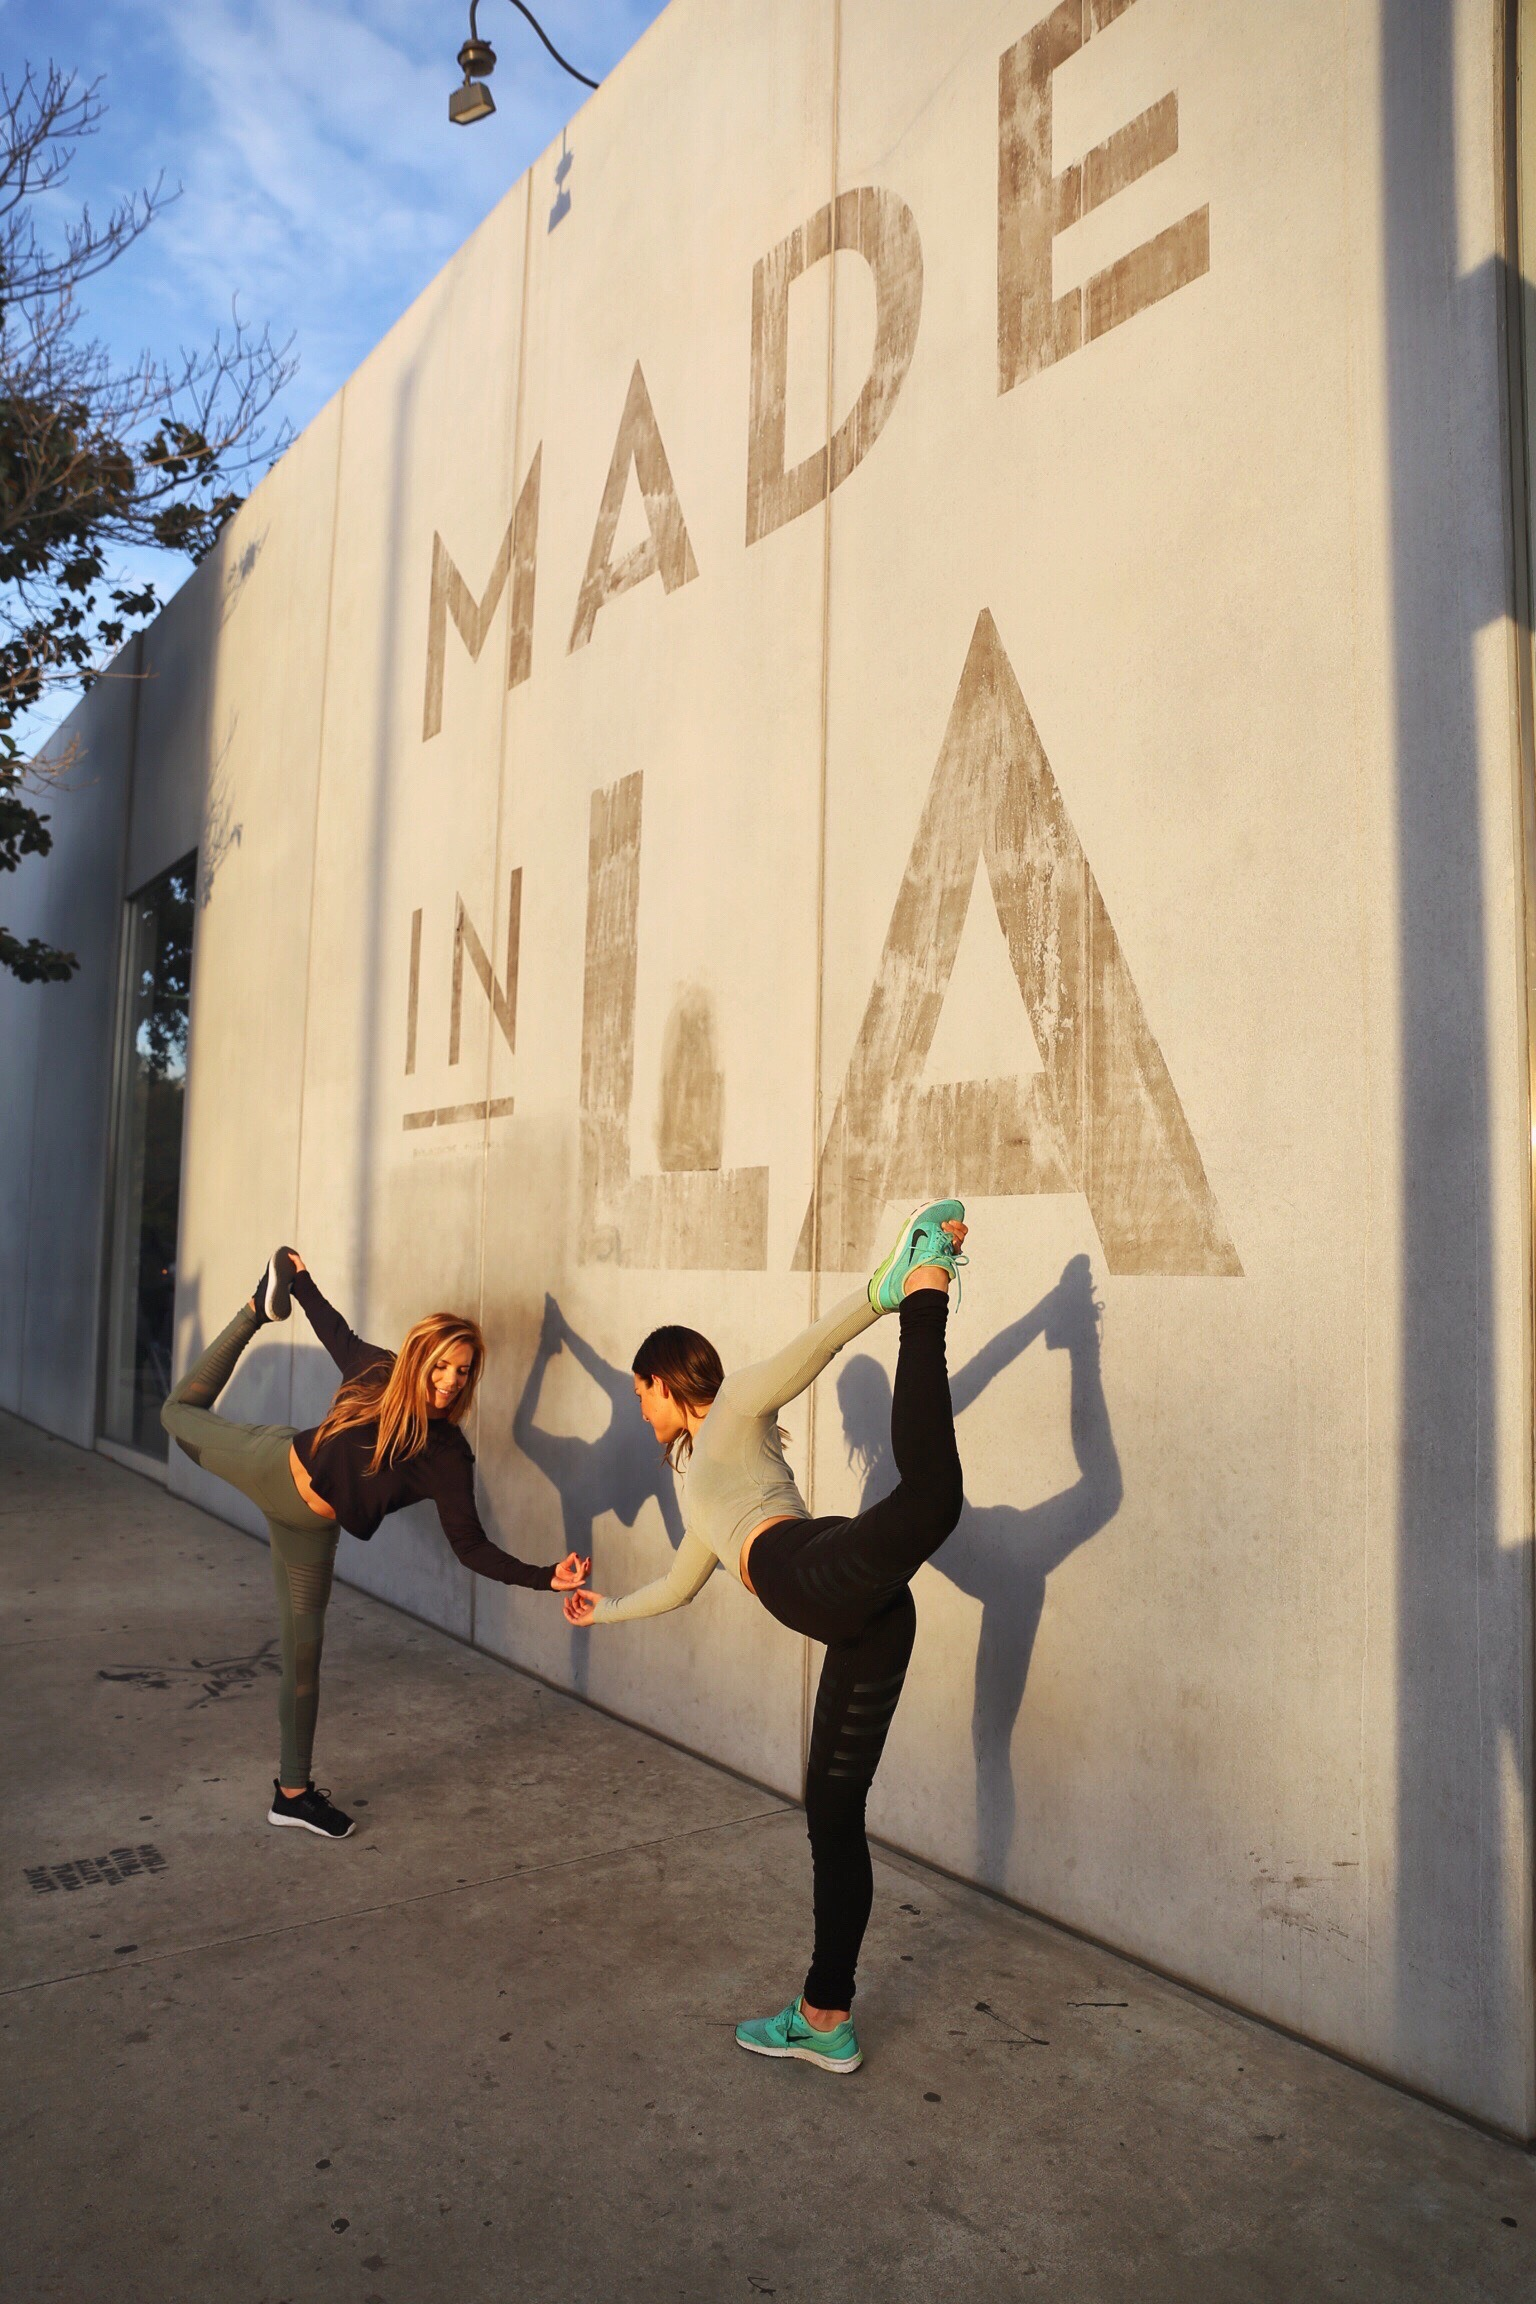 10 Most Instagram-Worthy Wall Art in Los Angeles - Whitney E. RD